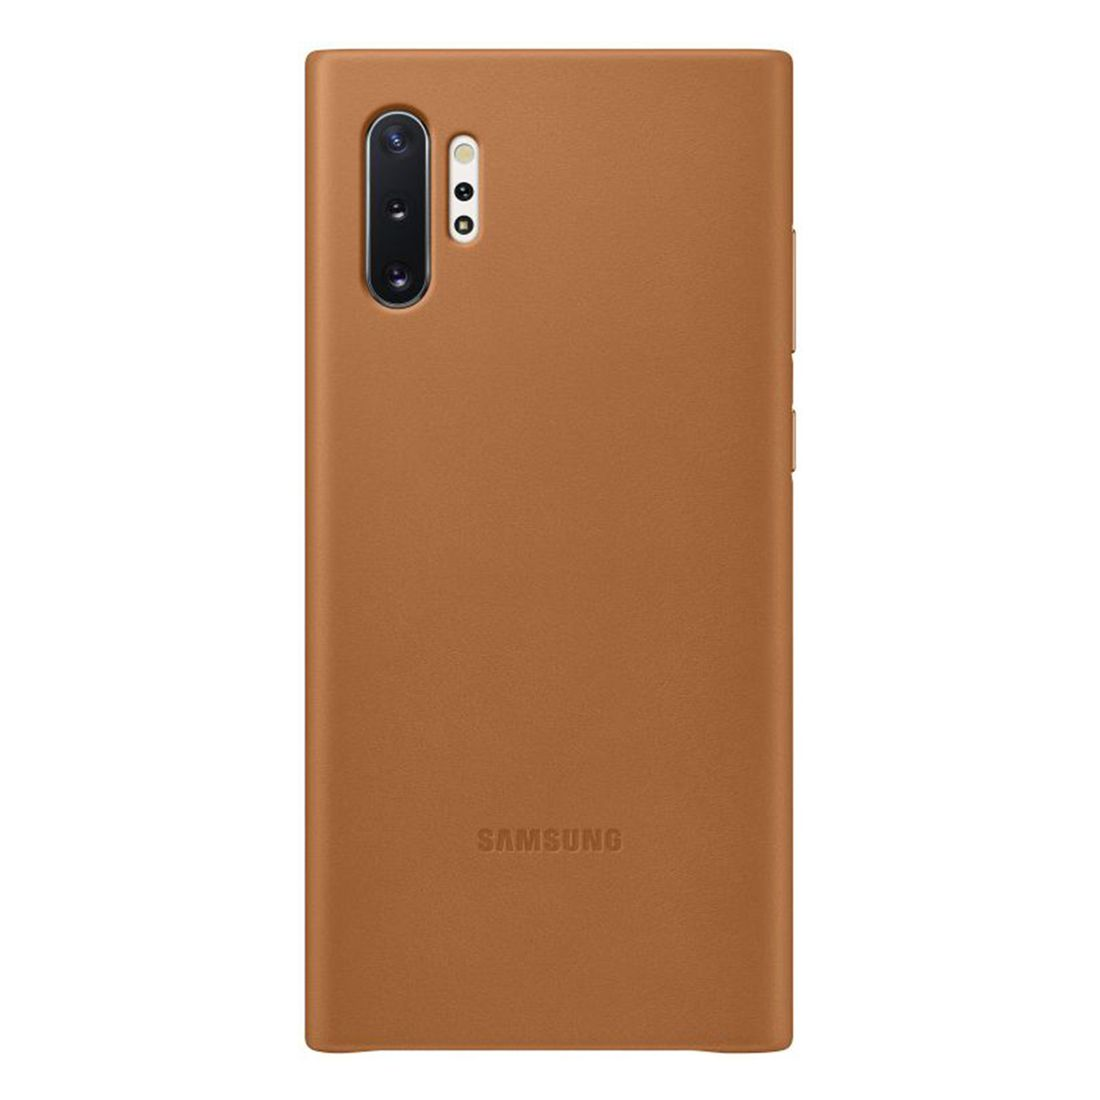 Samsung Galaxy Note 10+ Plus Leather Back Cover - Brown